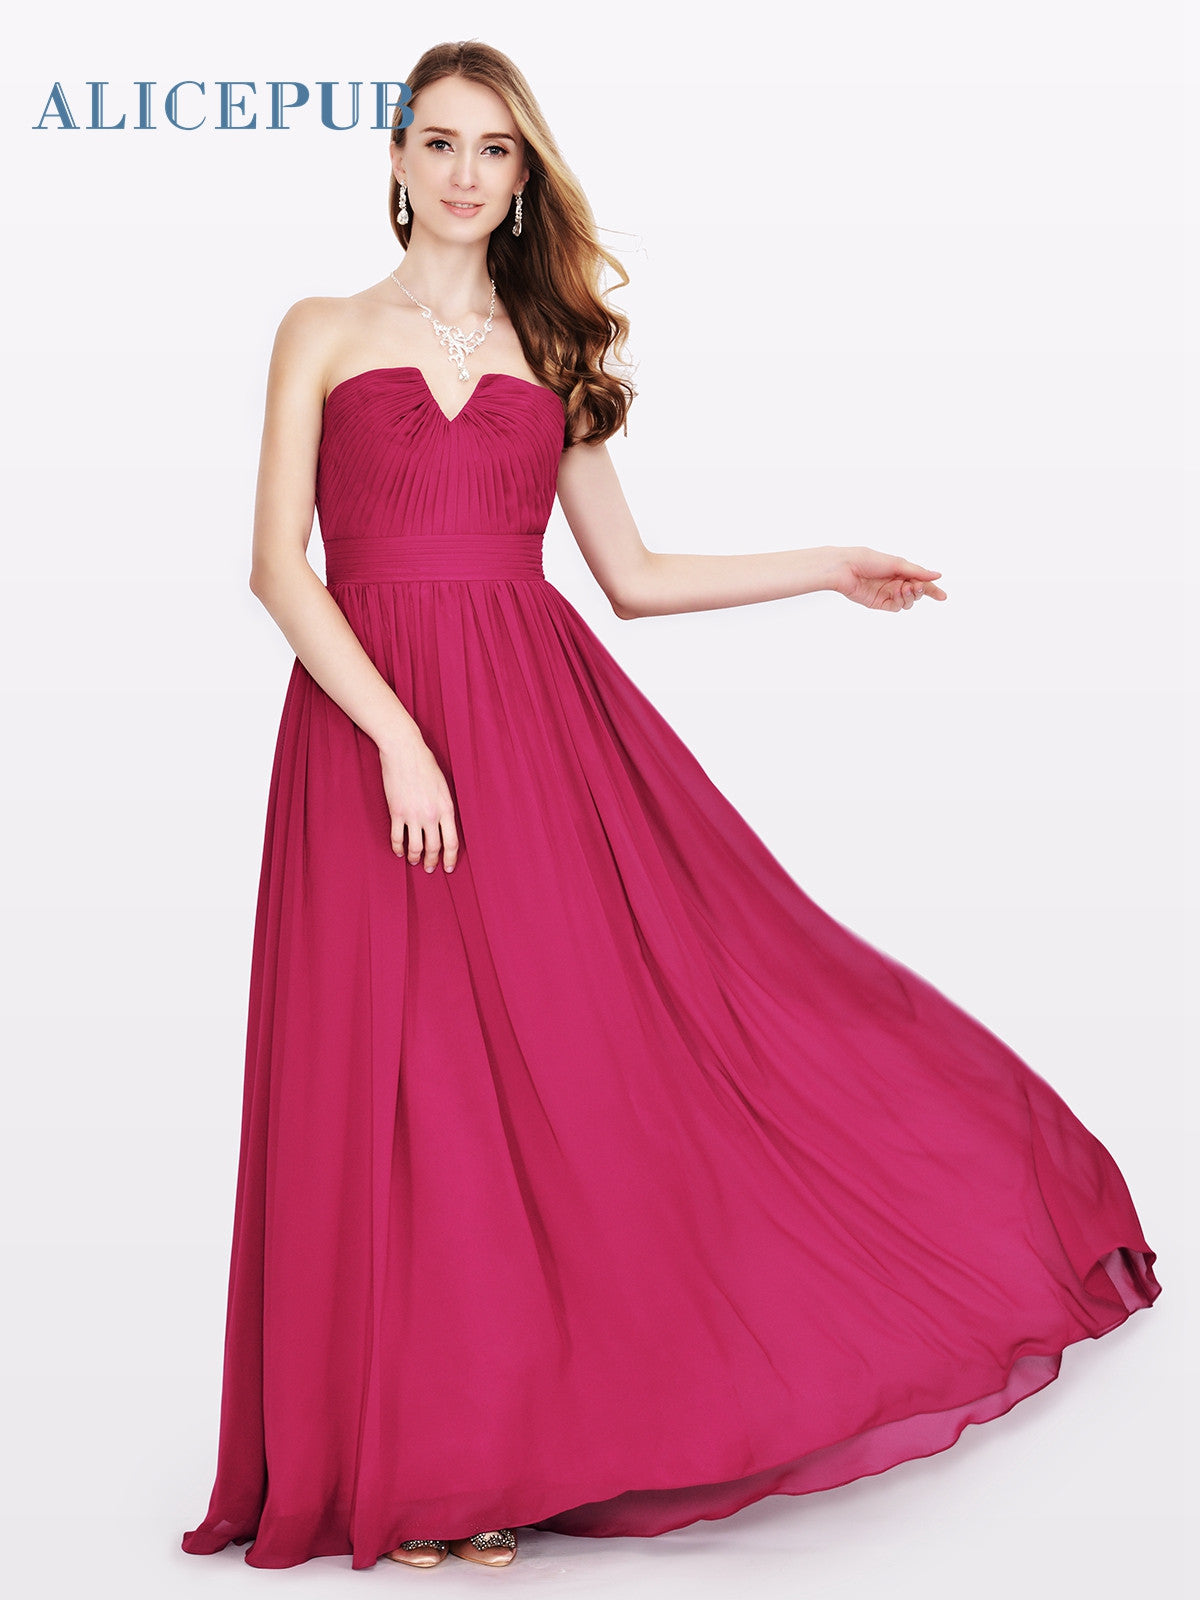 Alicepub STOCK 6 Style Bridesmaid Dresses Long Chiffon Wedding Party ...